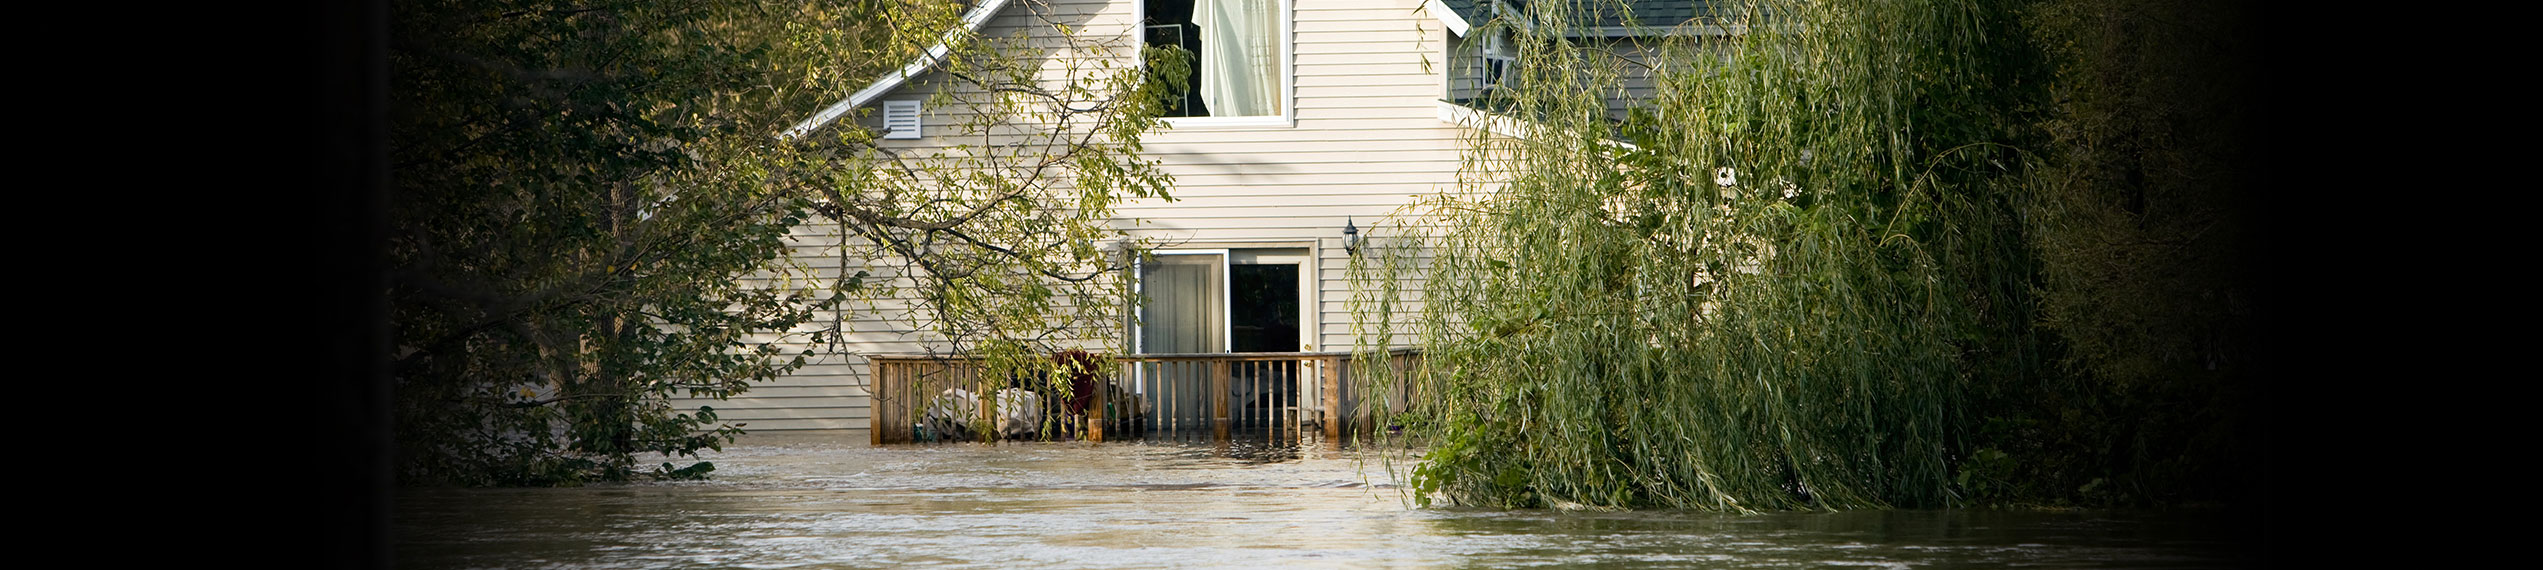 Water & Flood Damage Removal Services in Paul Davis Restoration of Metro New Jersey